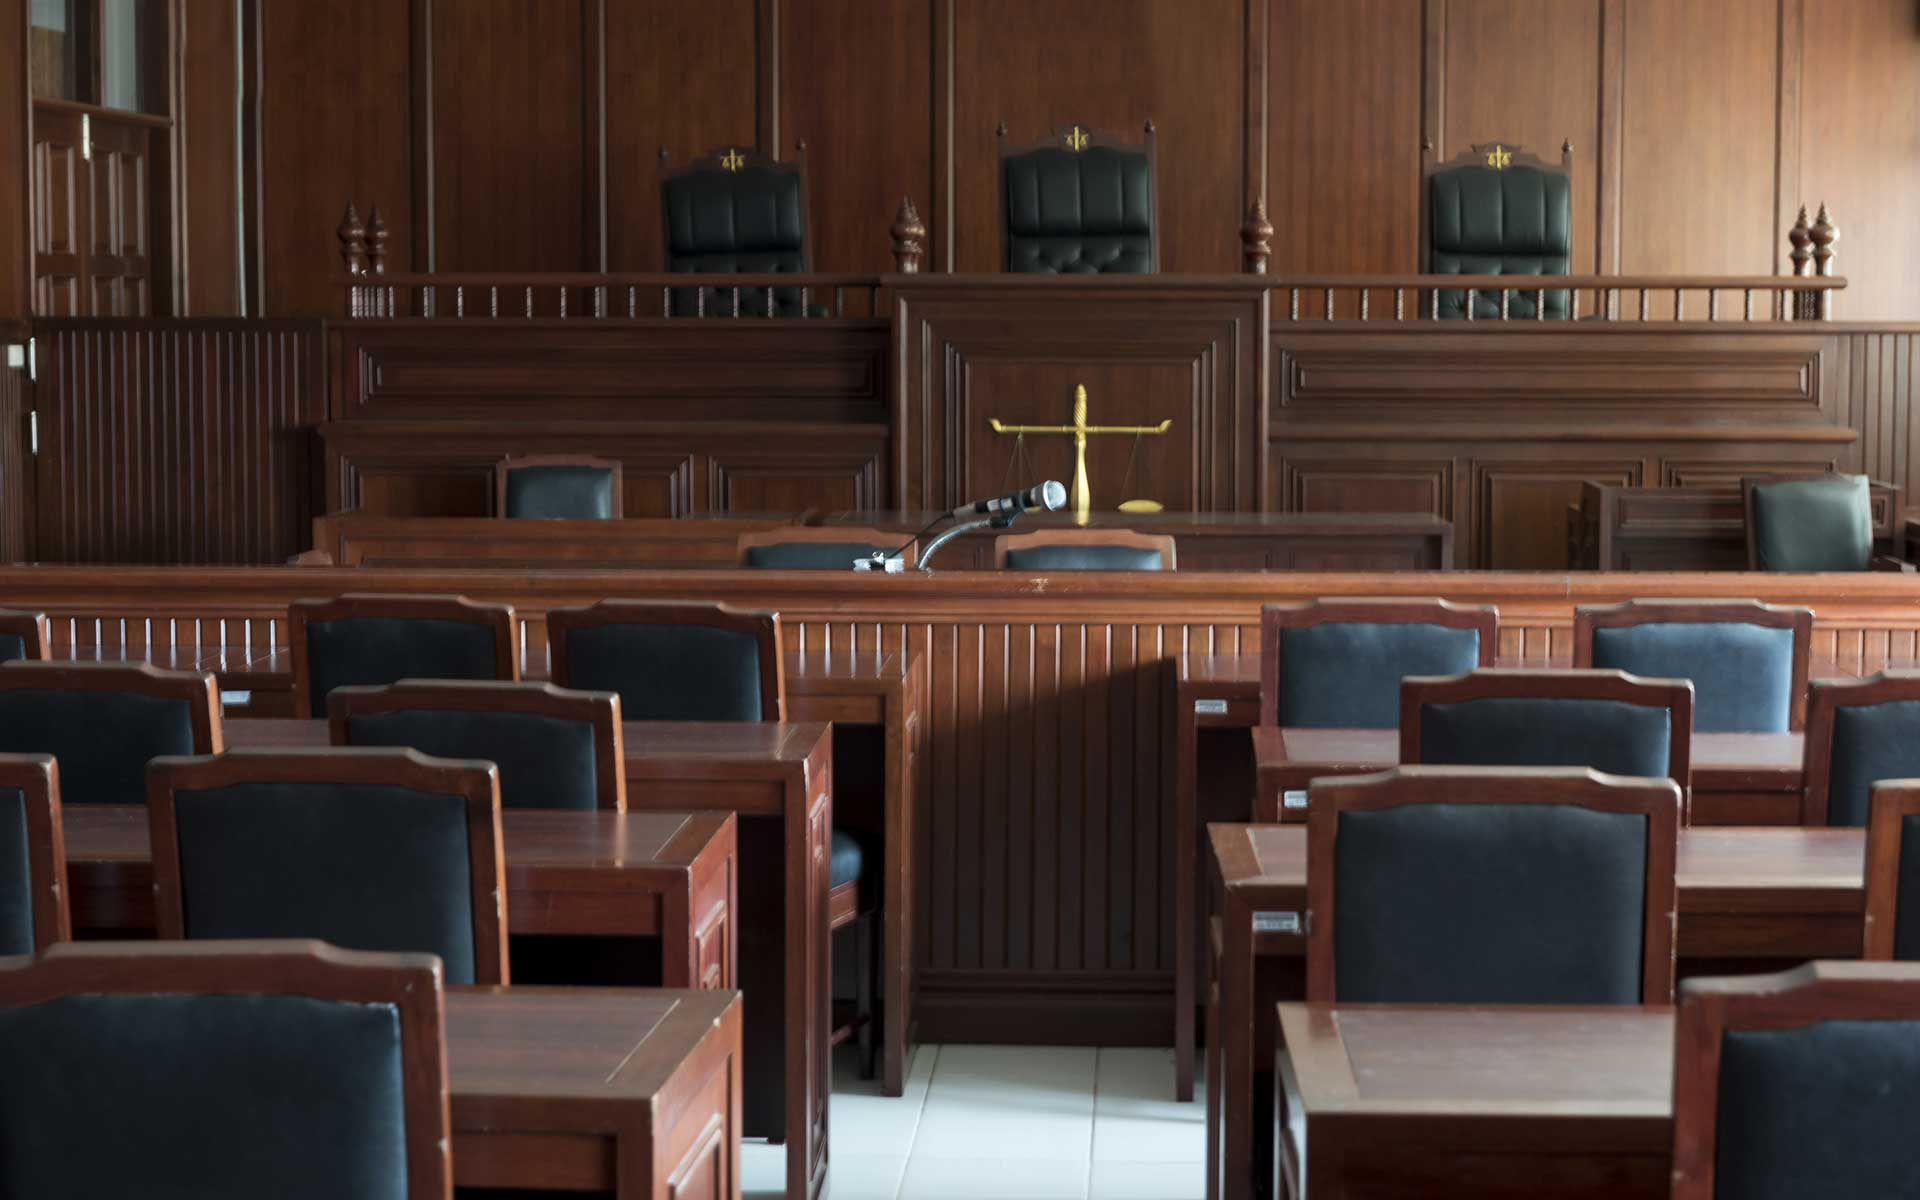 Impact of COVID-19 on Jury Trials and Proceedings in Texas